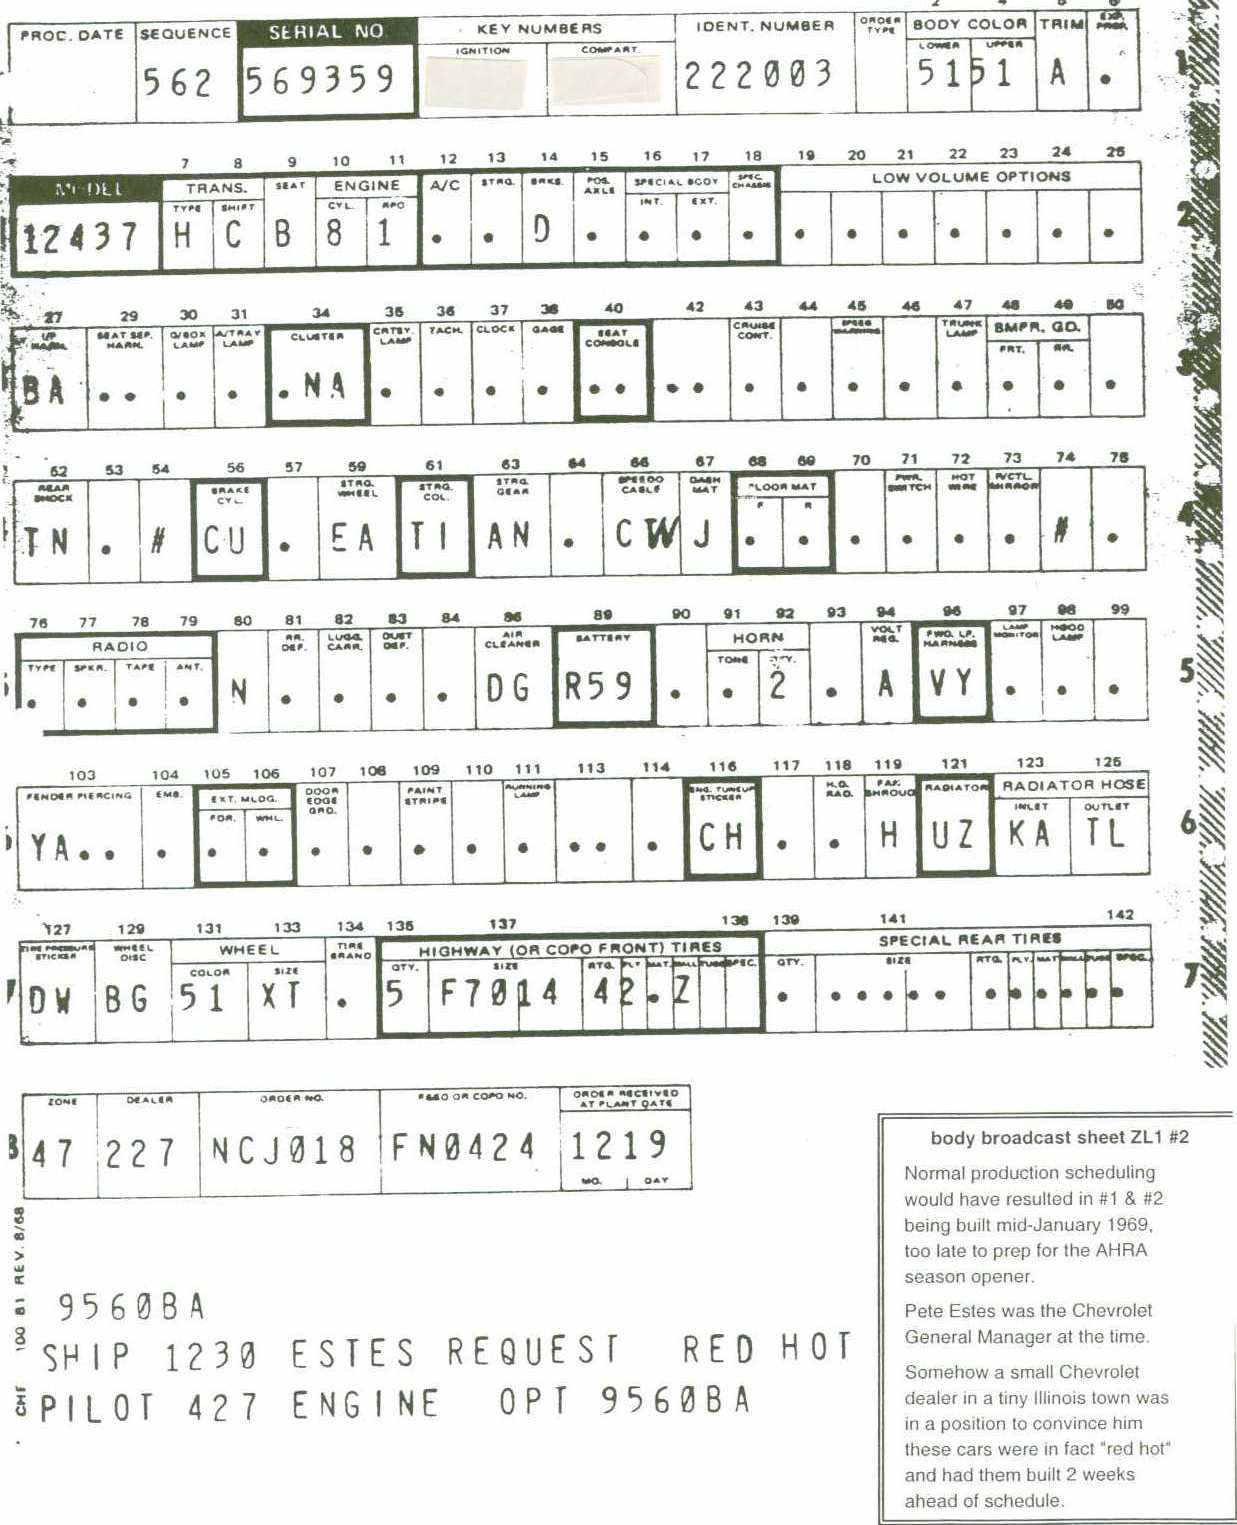 Crg Research Report Copo 427 Engine Diagram 9560 2 Body Broadcast Copy Sheet